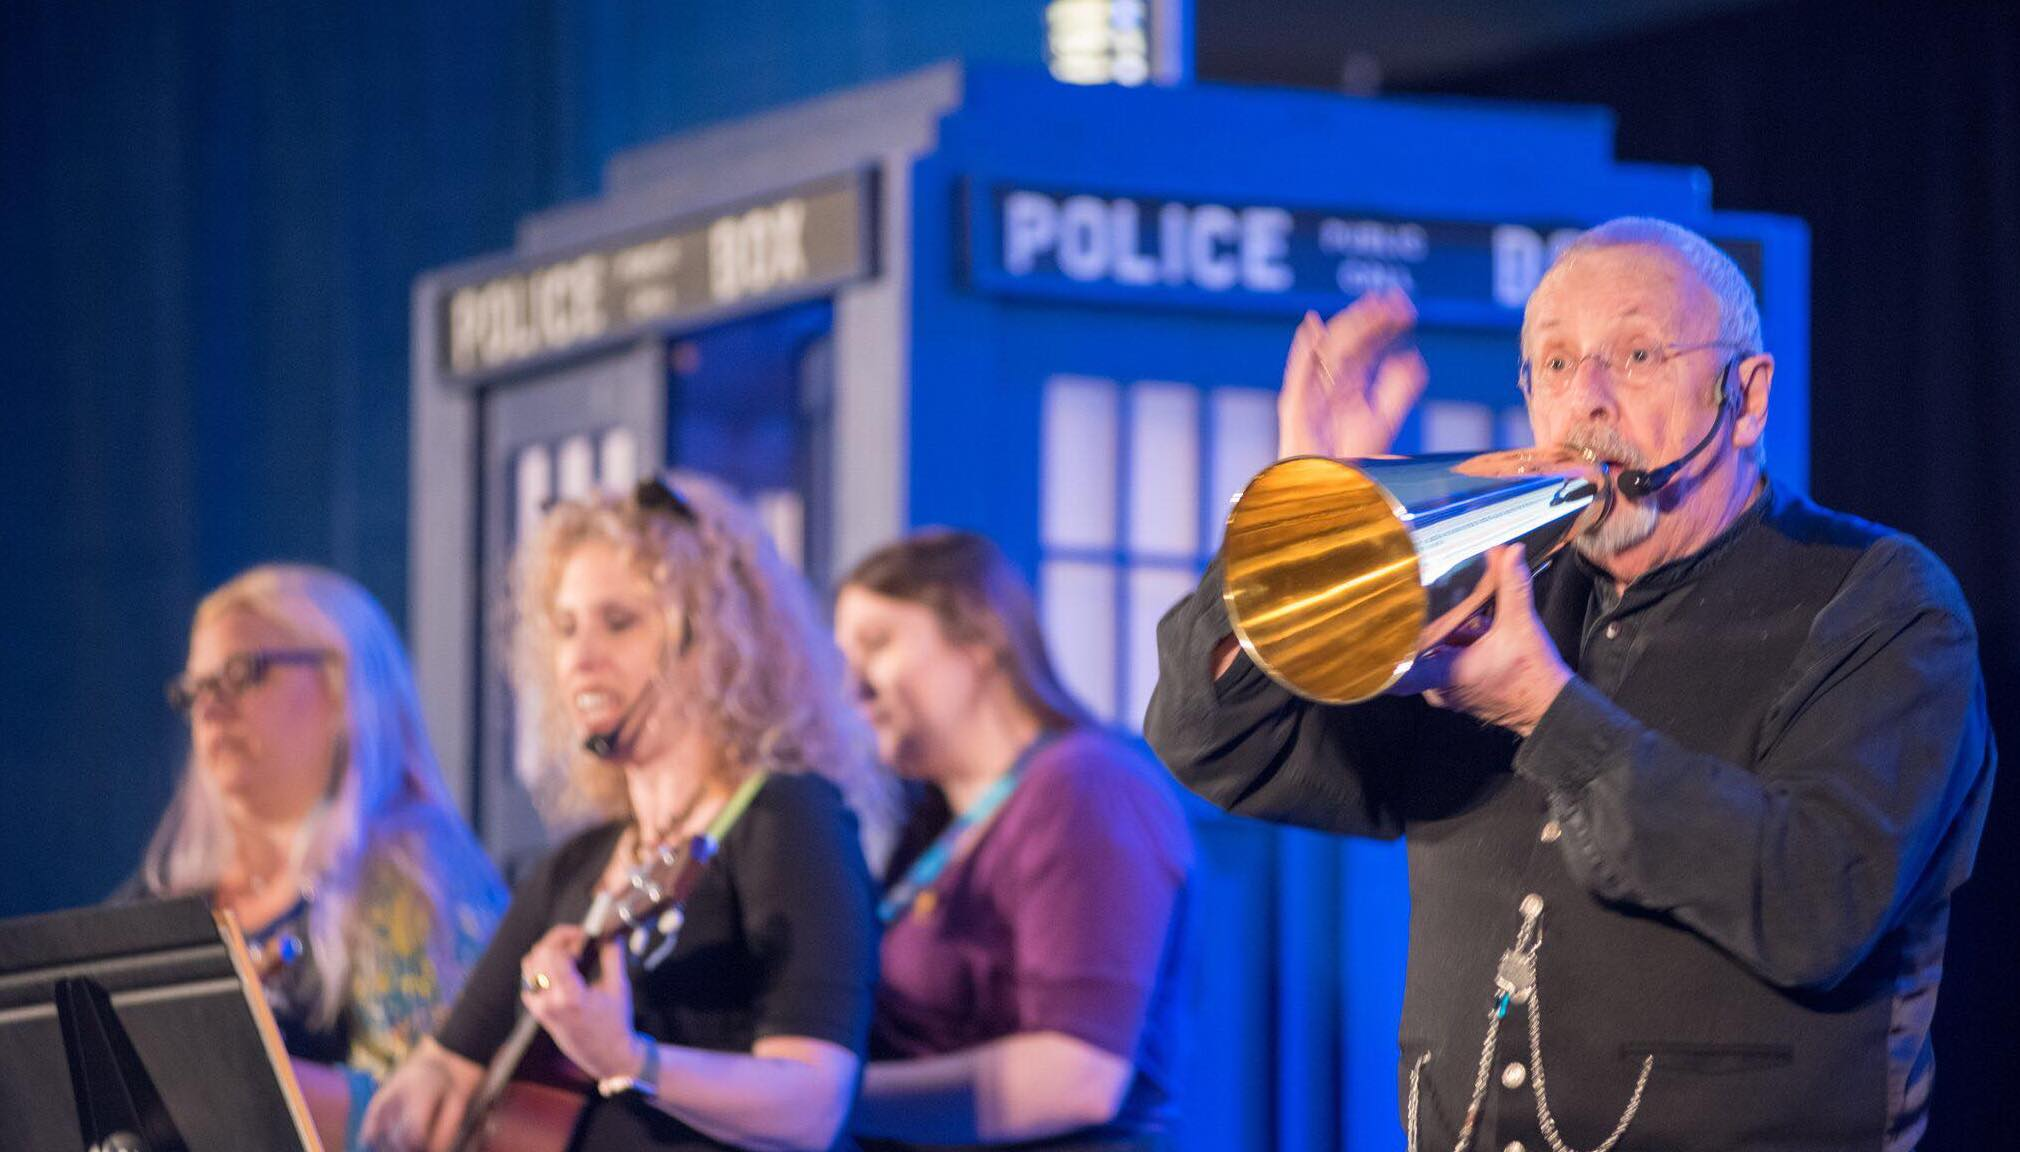 Doctor Who's Davros (Terry Molloy) to perform cabaret at Sci-Fi Ball 25 Logo